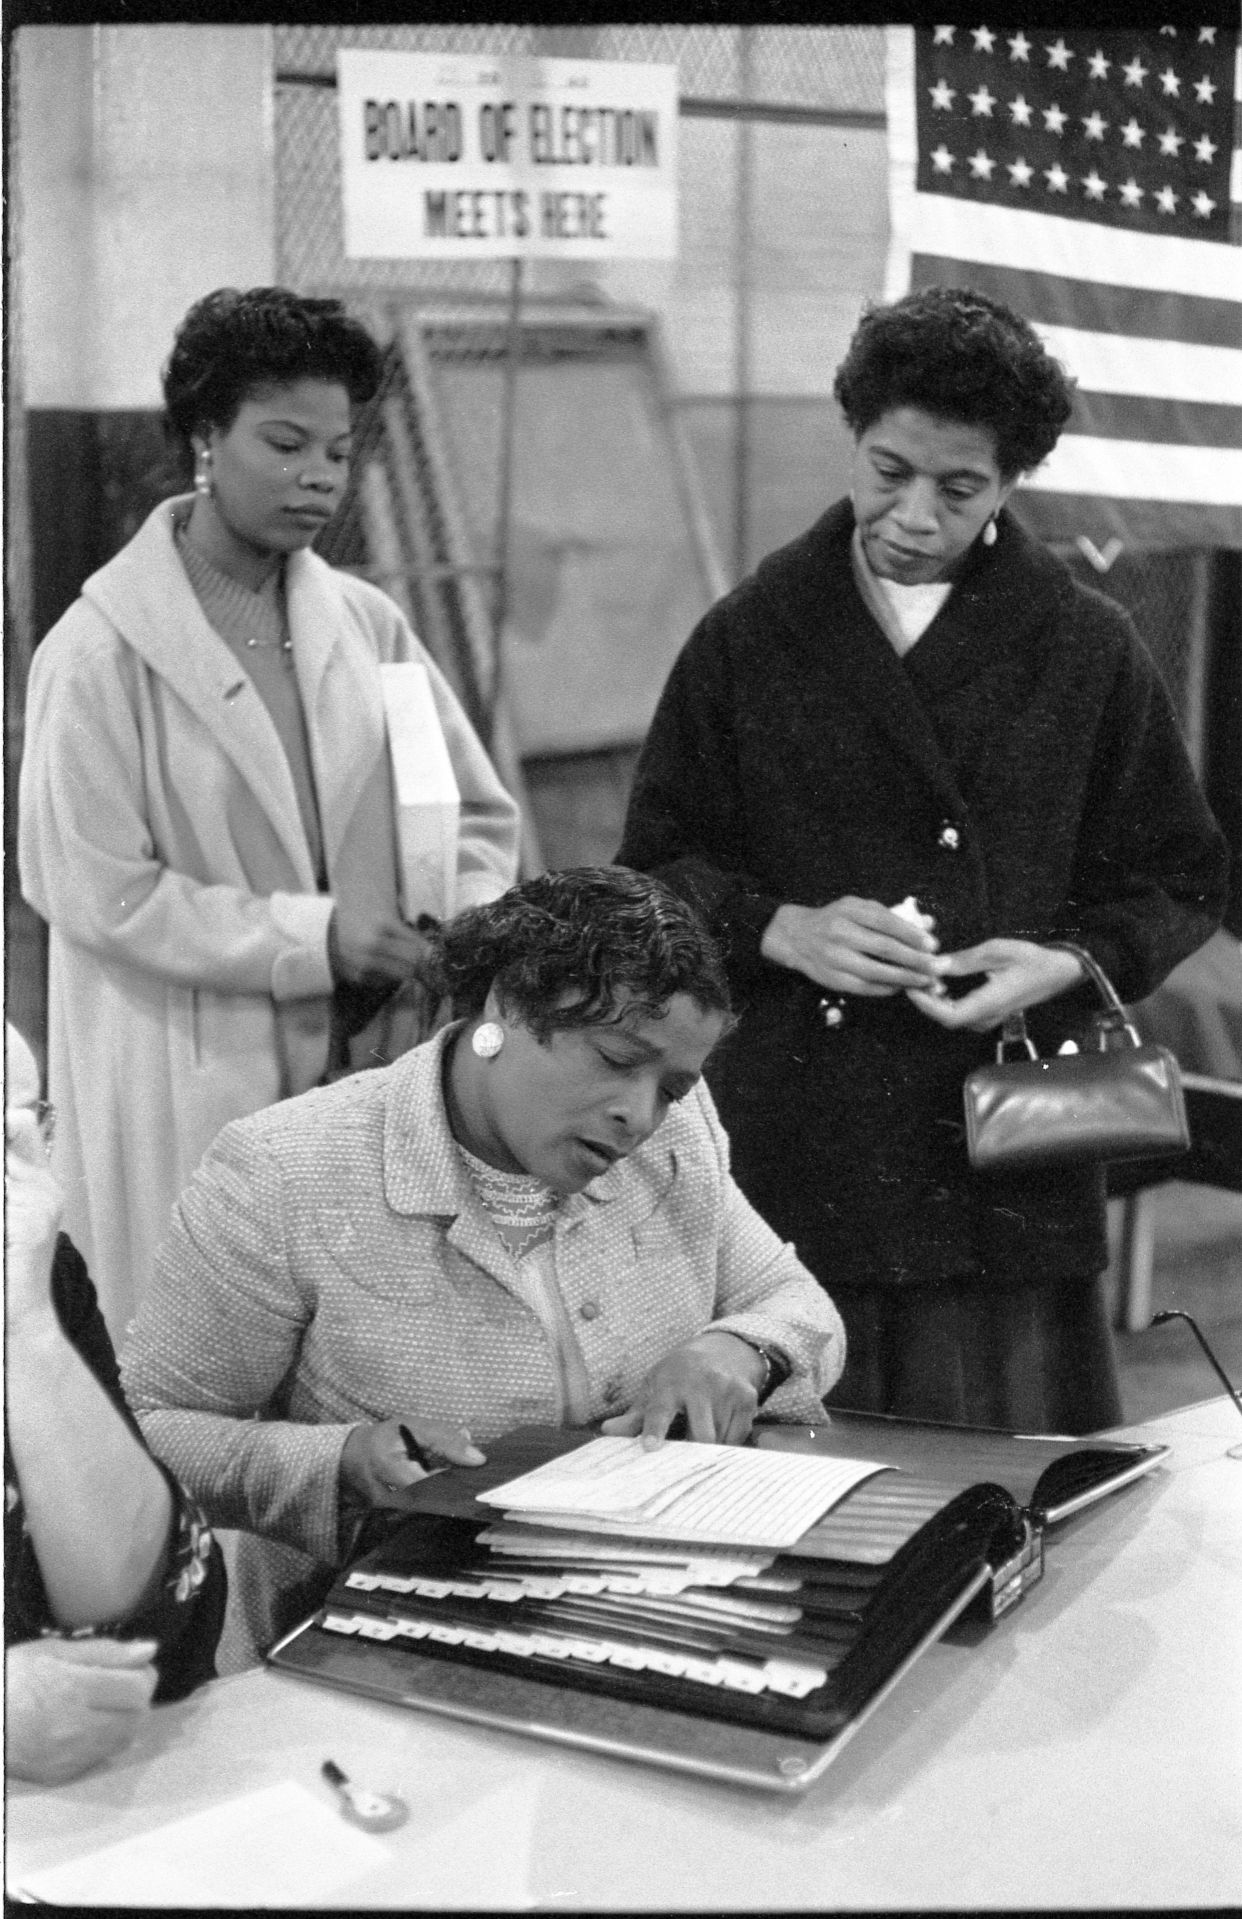 http://hdl.loc.gov/loc.pnp/ds.08063  [Three women at a polling place, one looking at a book of registered voters on November 5, 1957, in New York City or Newark, New Jersey] / TOH.  O'Halloran, Thomas J, photographer. Three \women at a polling place, one looking at a book of registered voters on November 5, in New York City or Newark, New Jersey / TOH. United States, 1957. [5 Nov] Photograph. https://www.loc.gov/item/2015651653/.